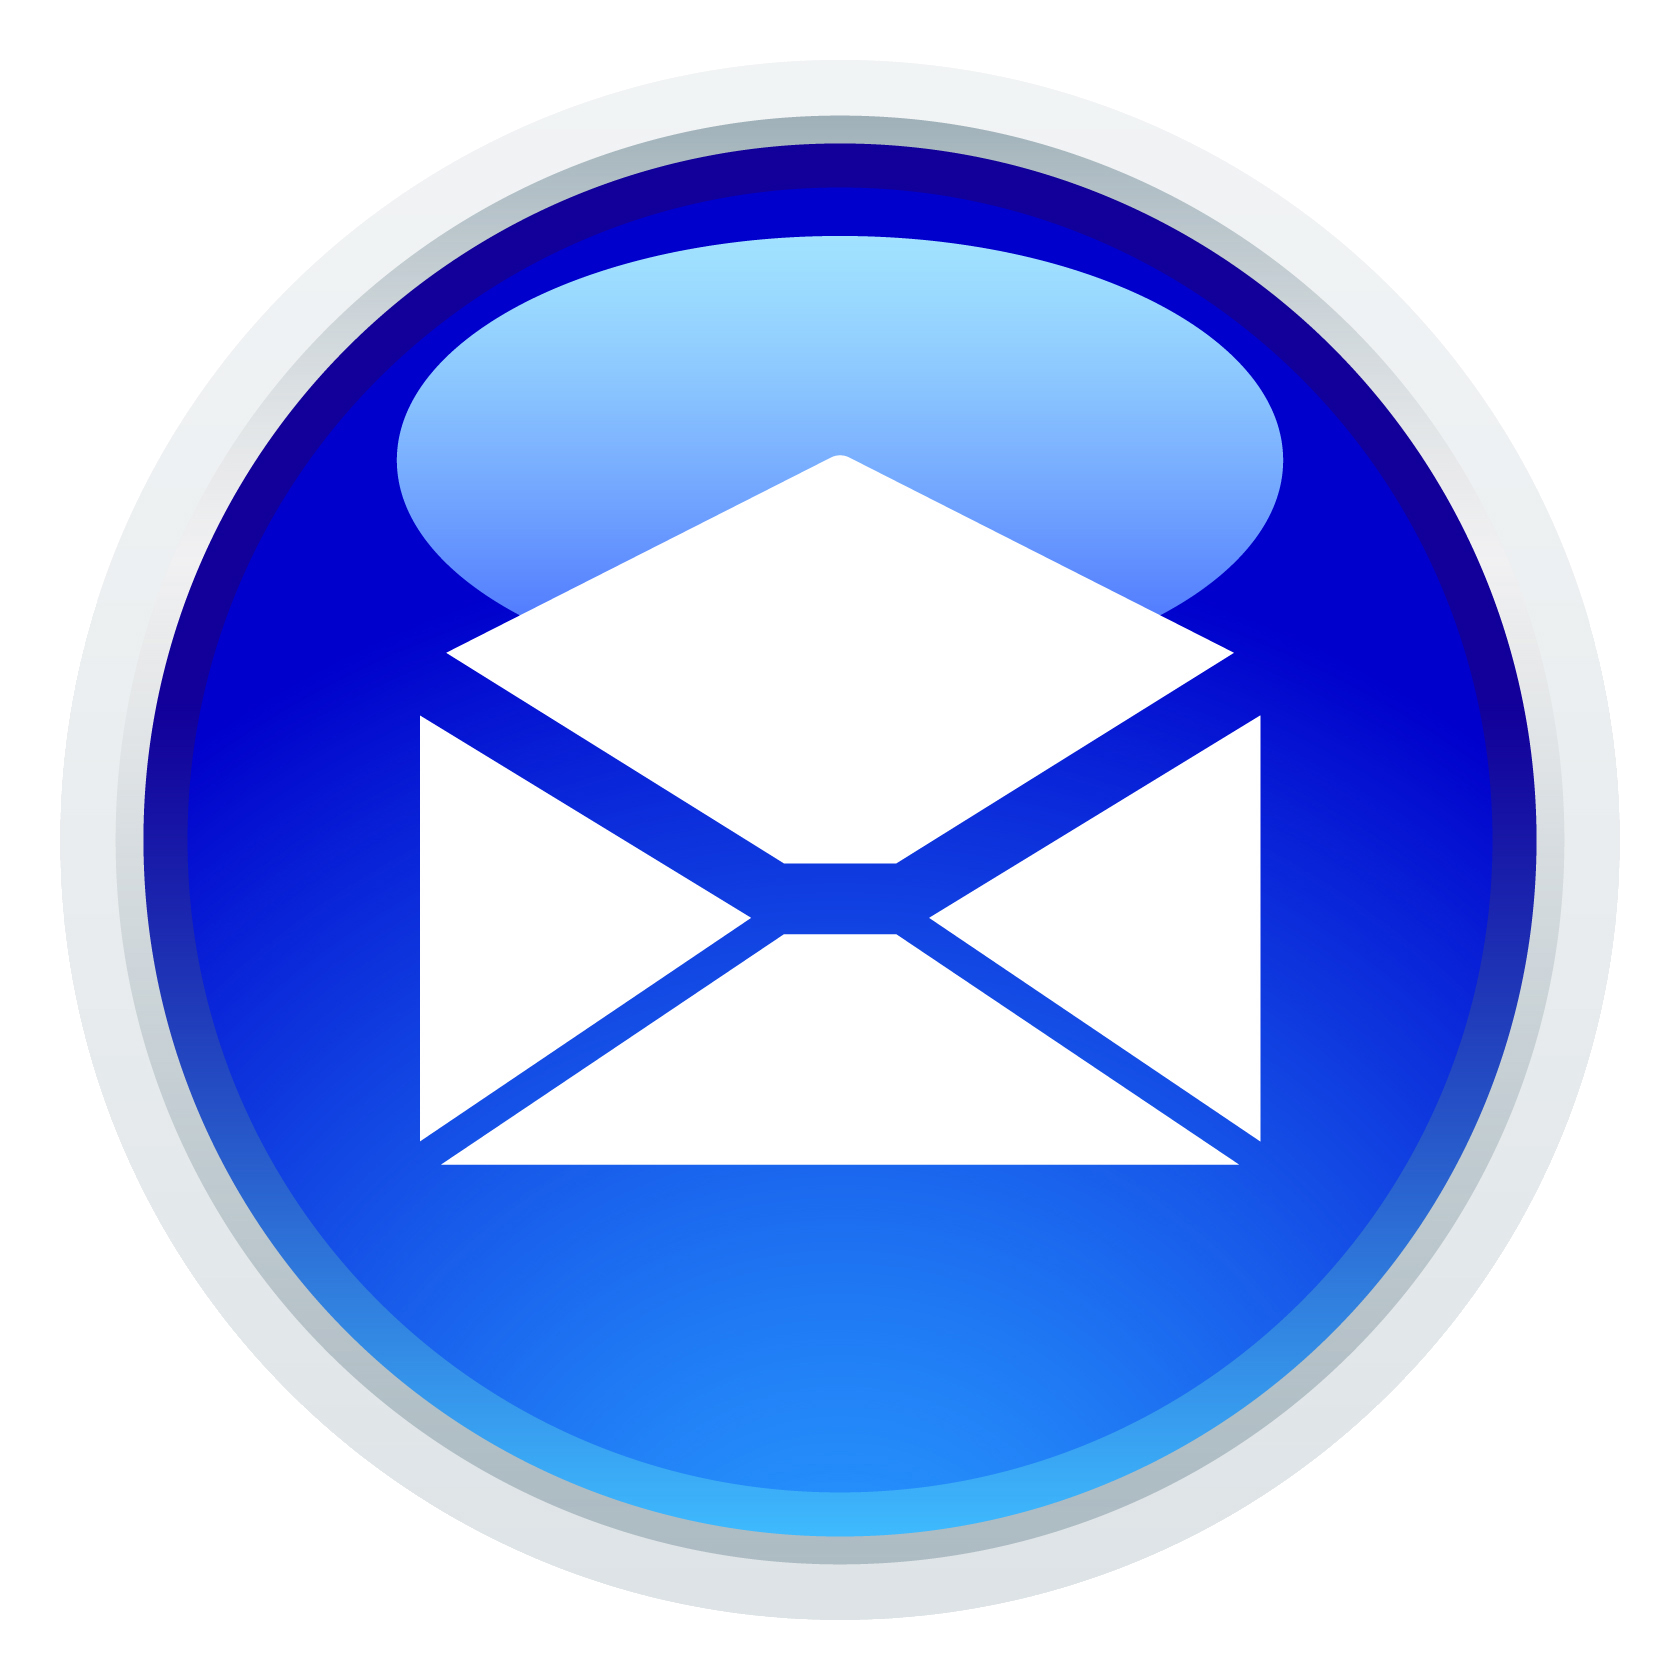 phone and email logo png wwwimgkidcom the image kid